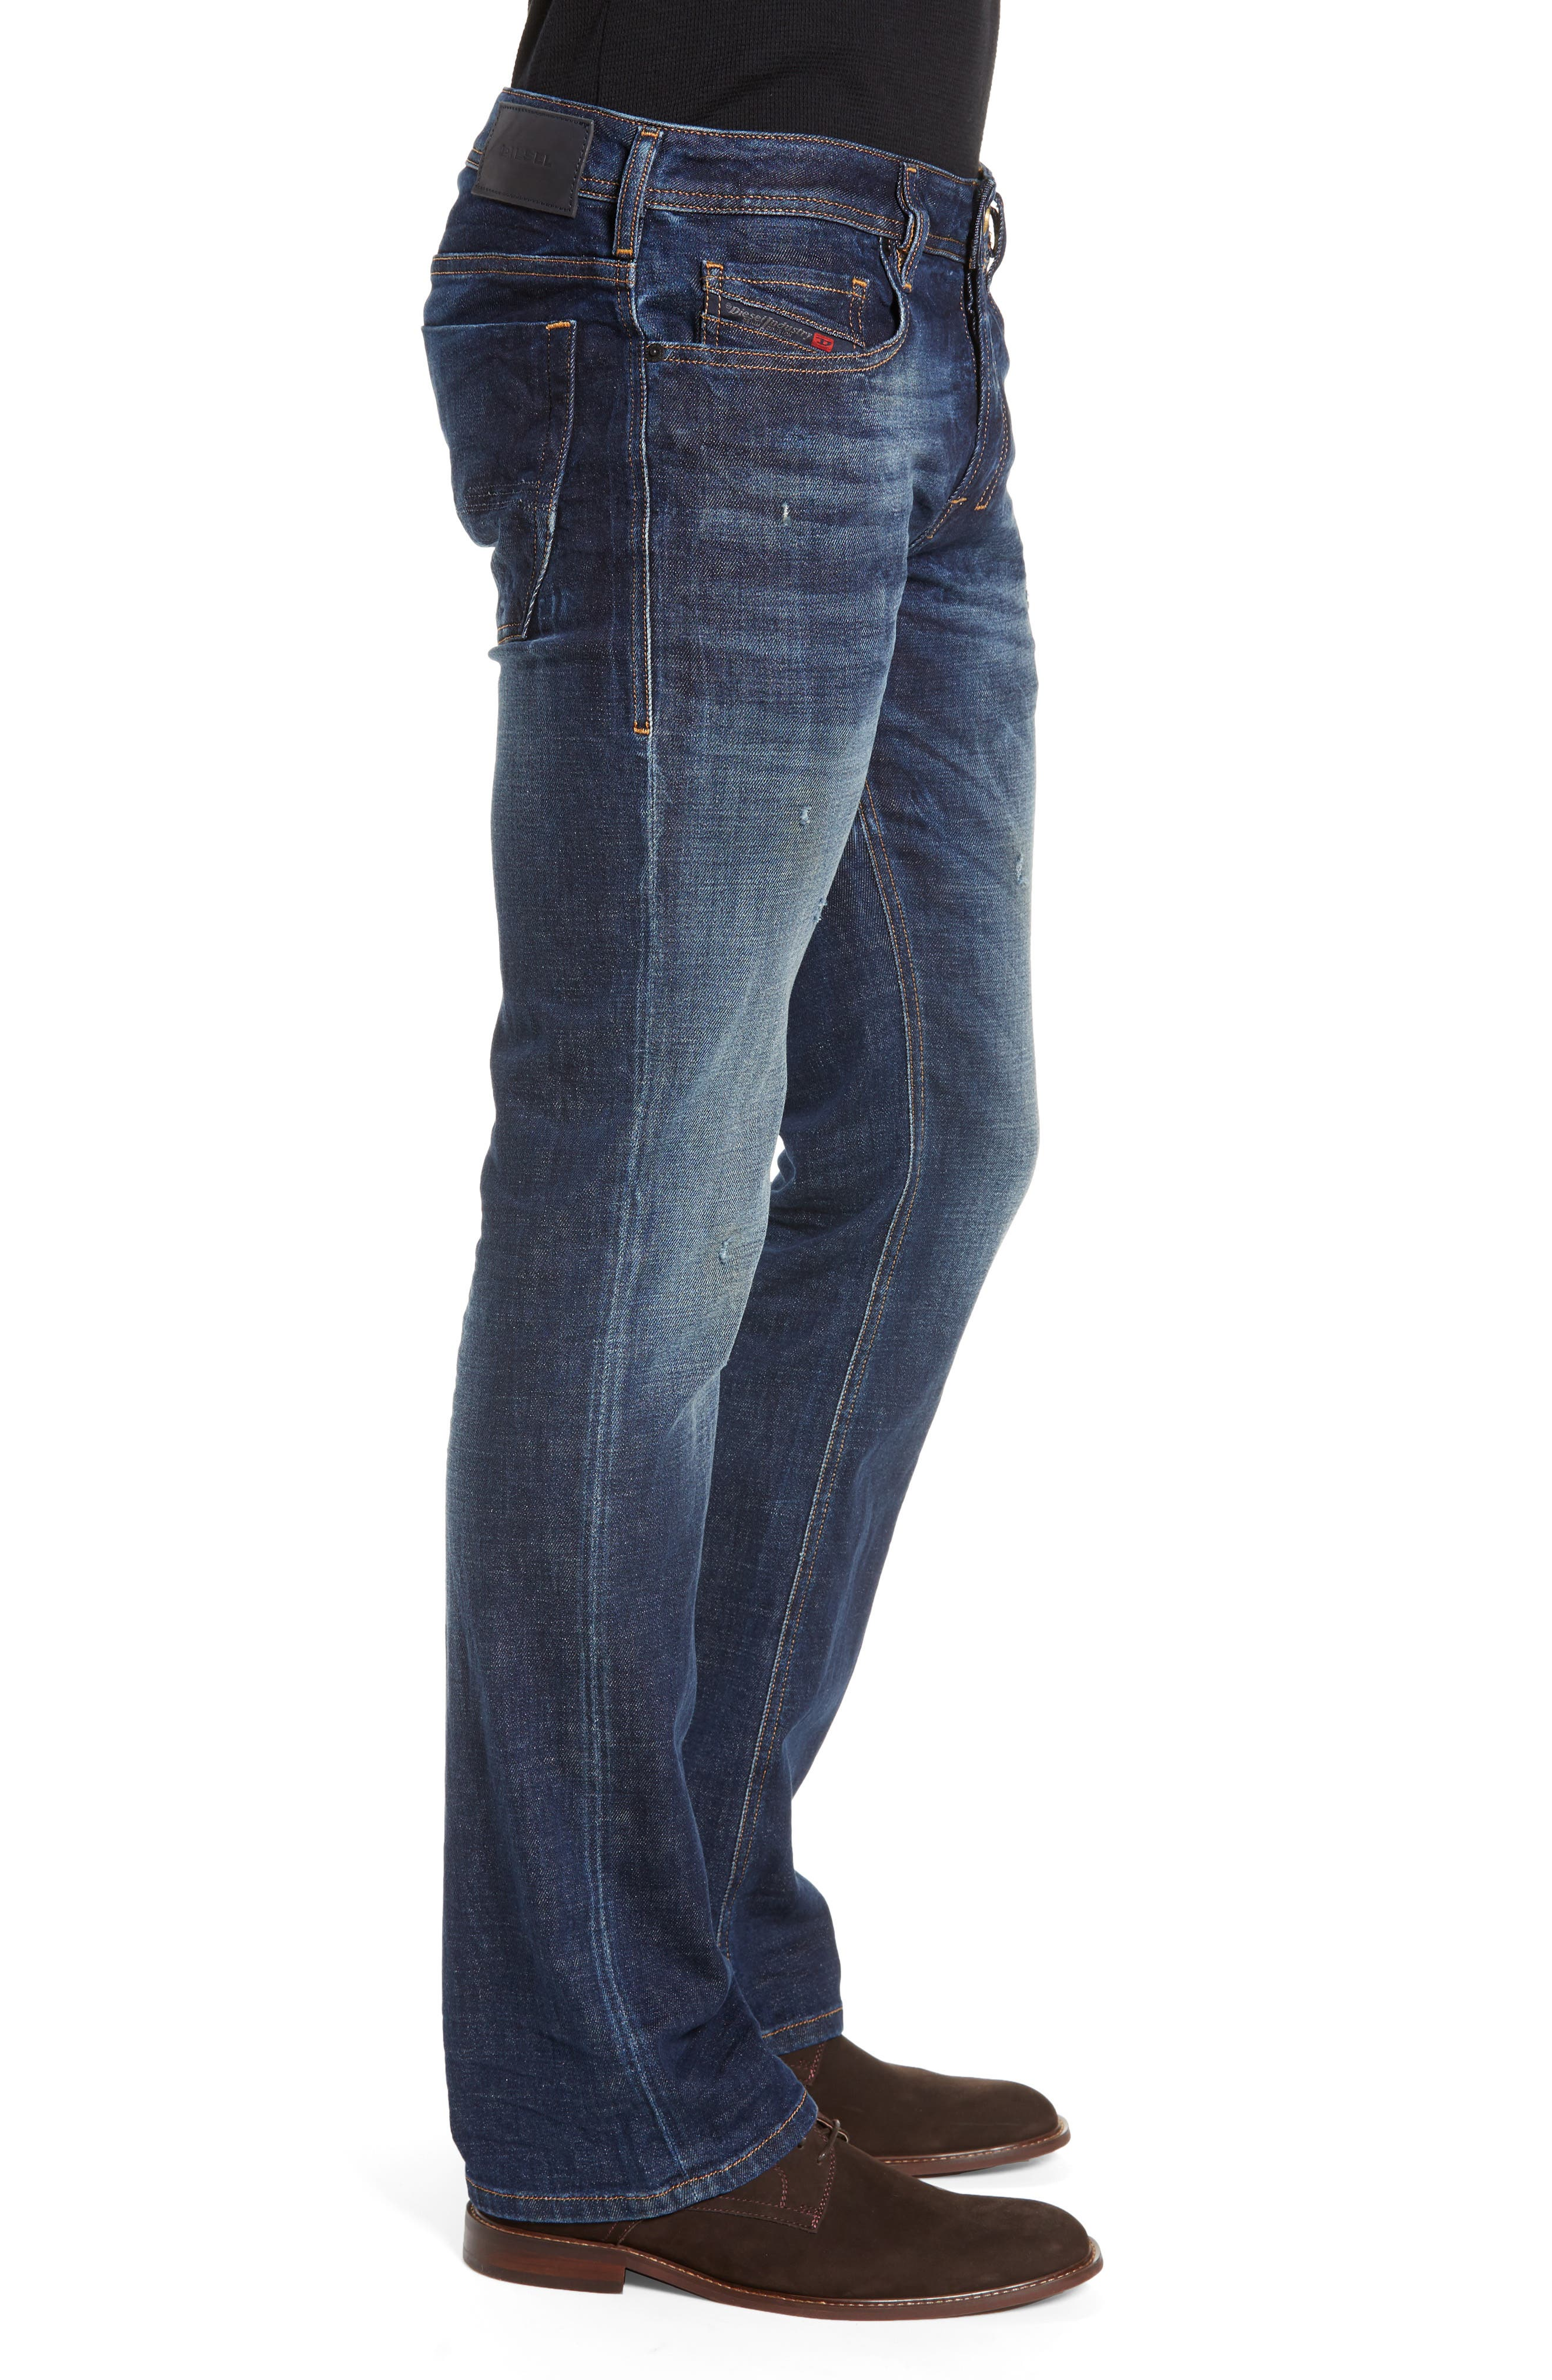 Zatiny Bootcut Jeans,                             Alternate thumbnail 3, color,                             087AT